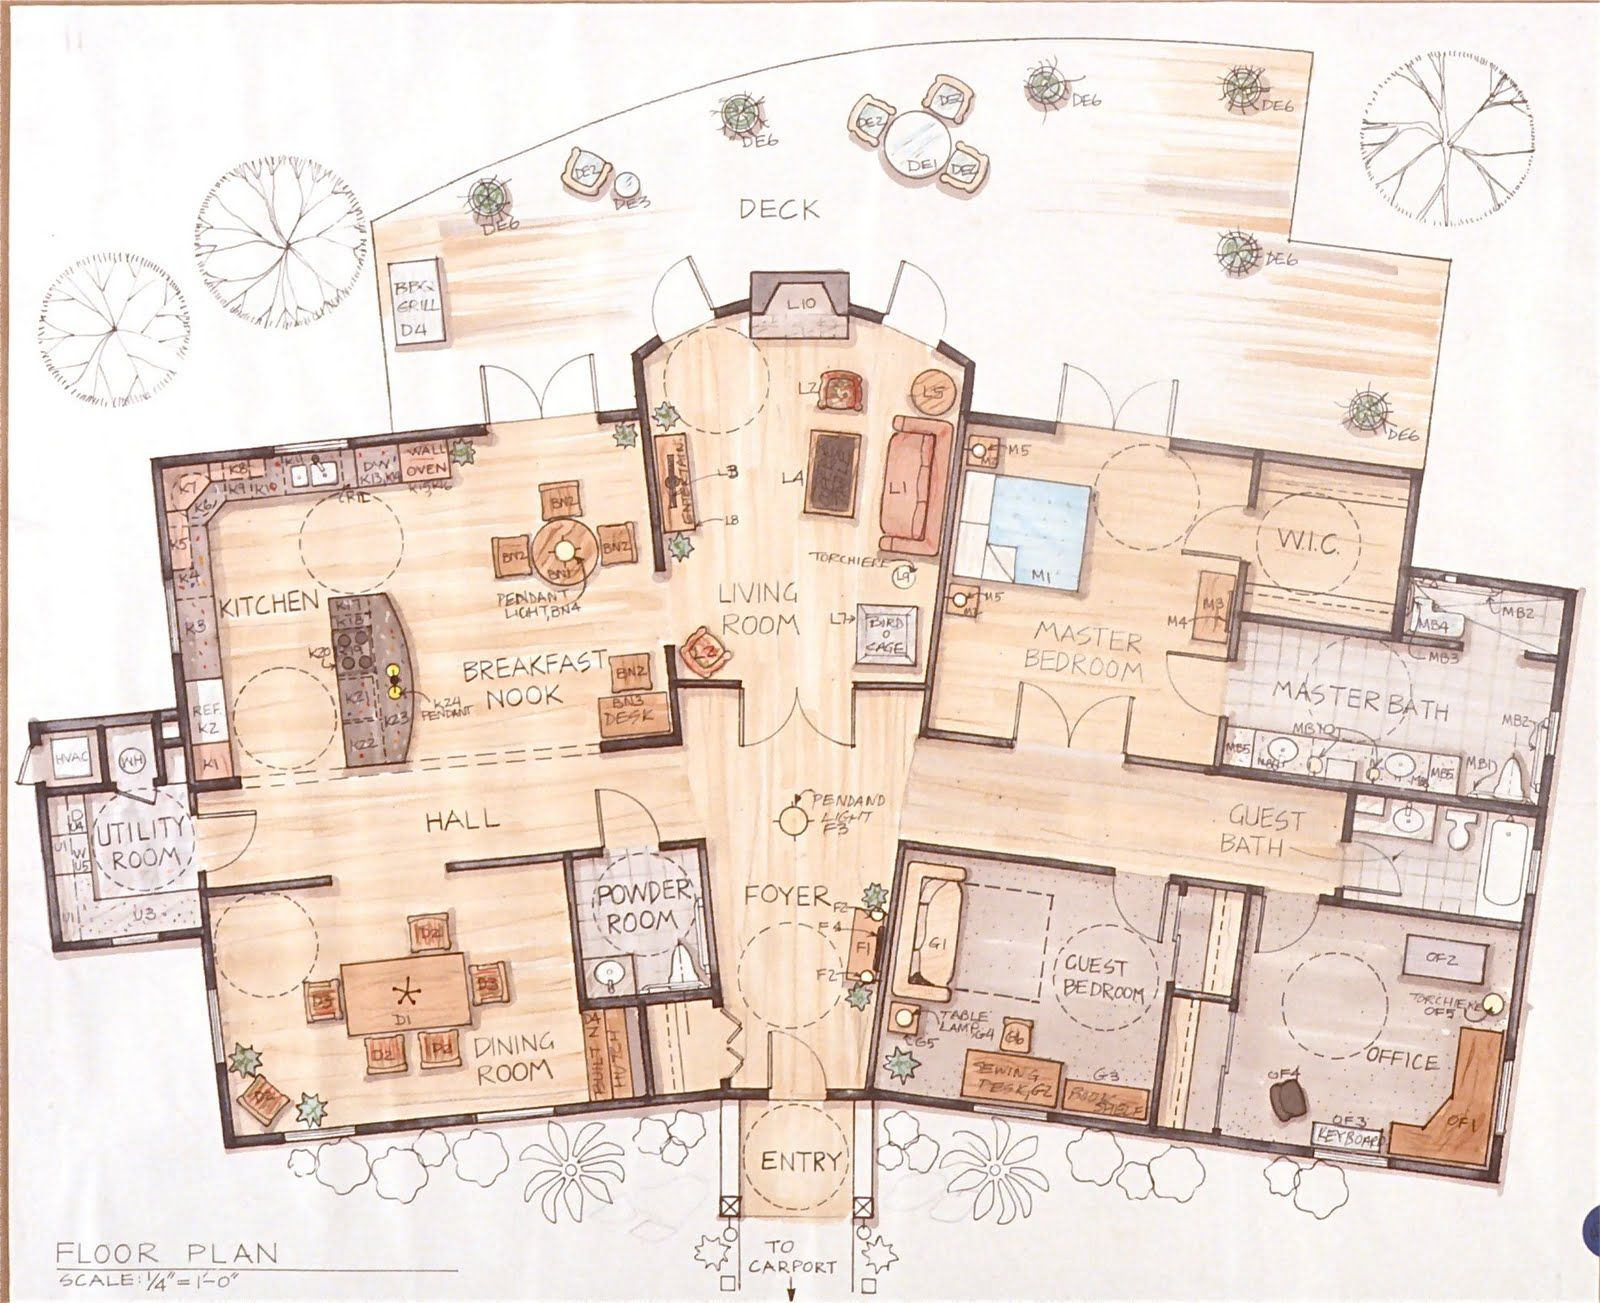 Interior Design Floor Plan Sketches how+to+draw+interior+design+sketches | plan design ideas and